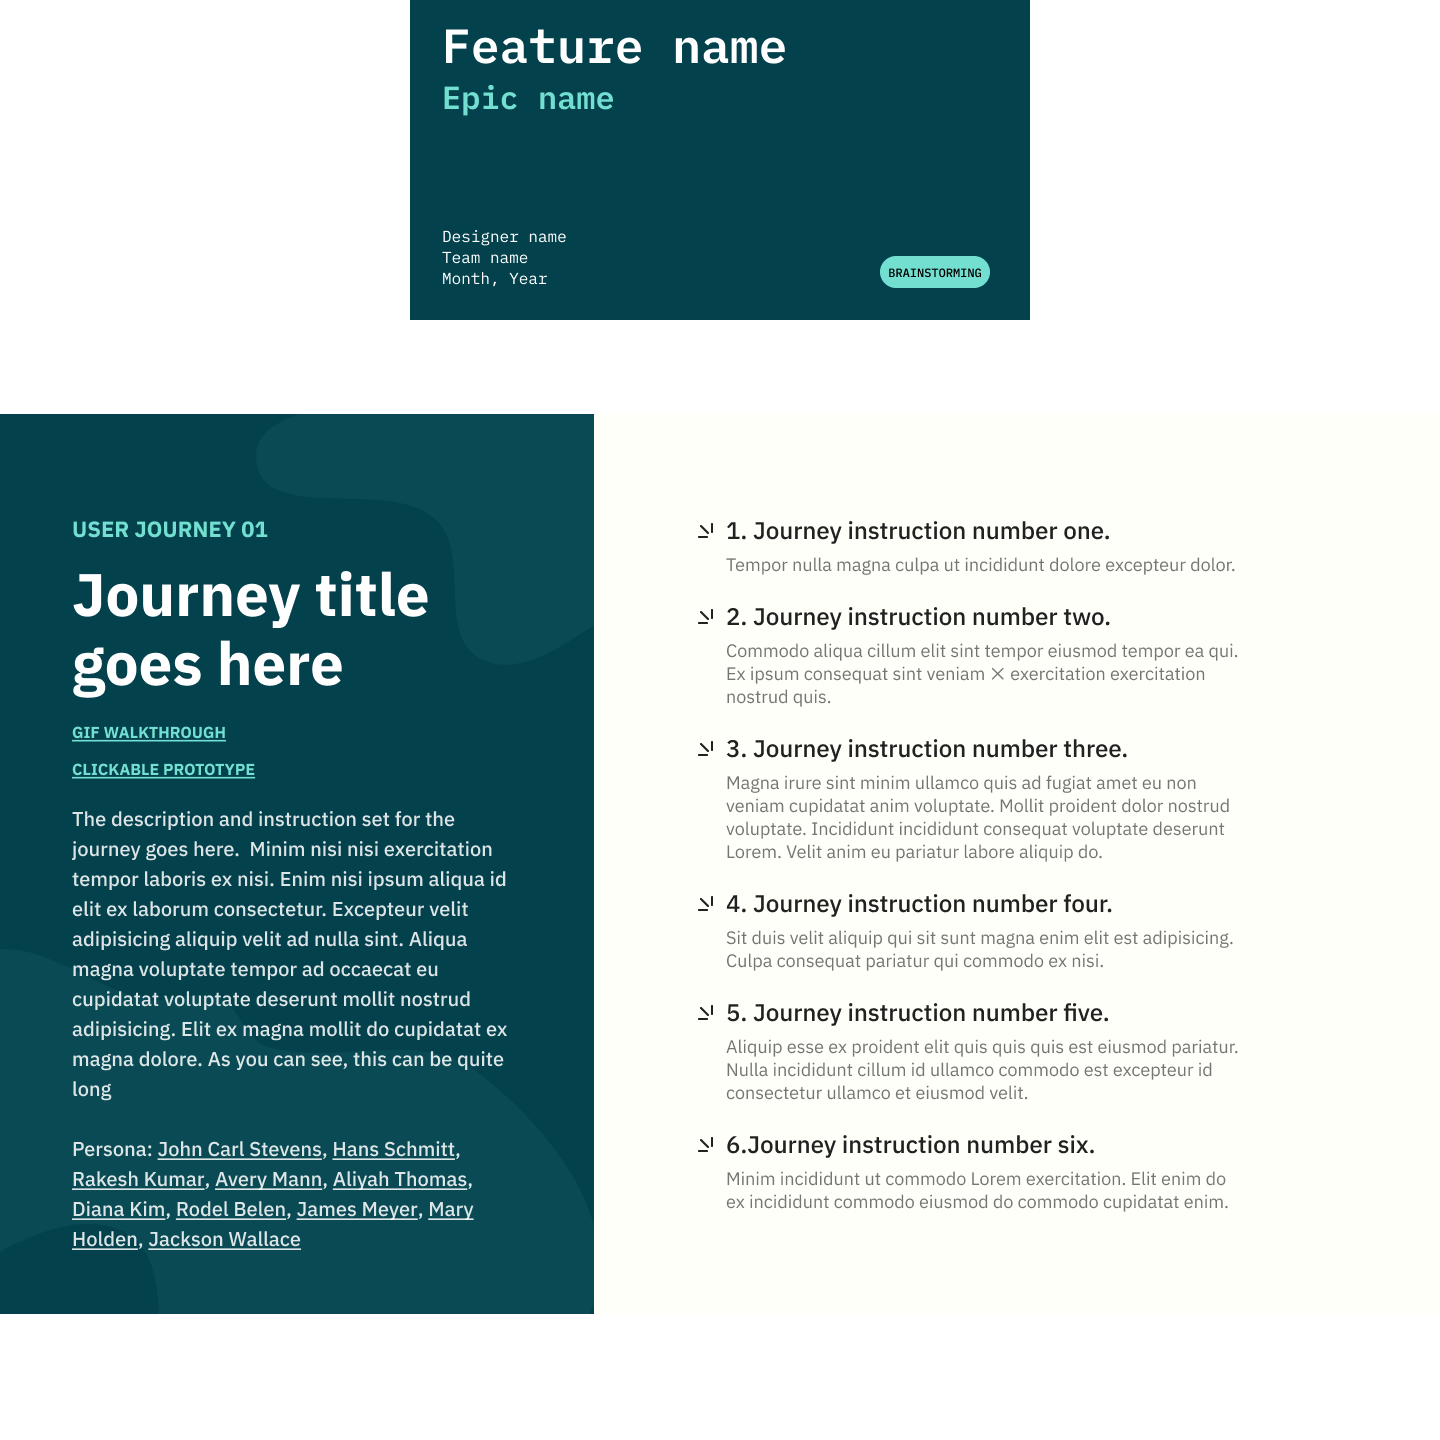 Project work flow covers to aid PMs and Developers in understanding the described journey.